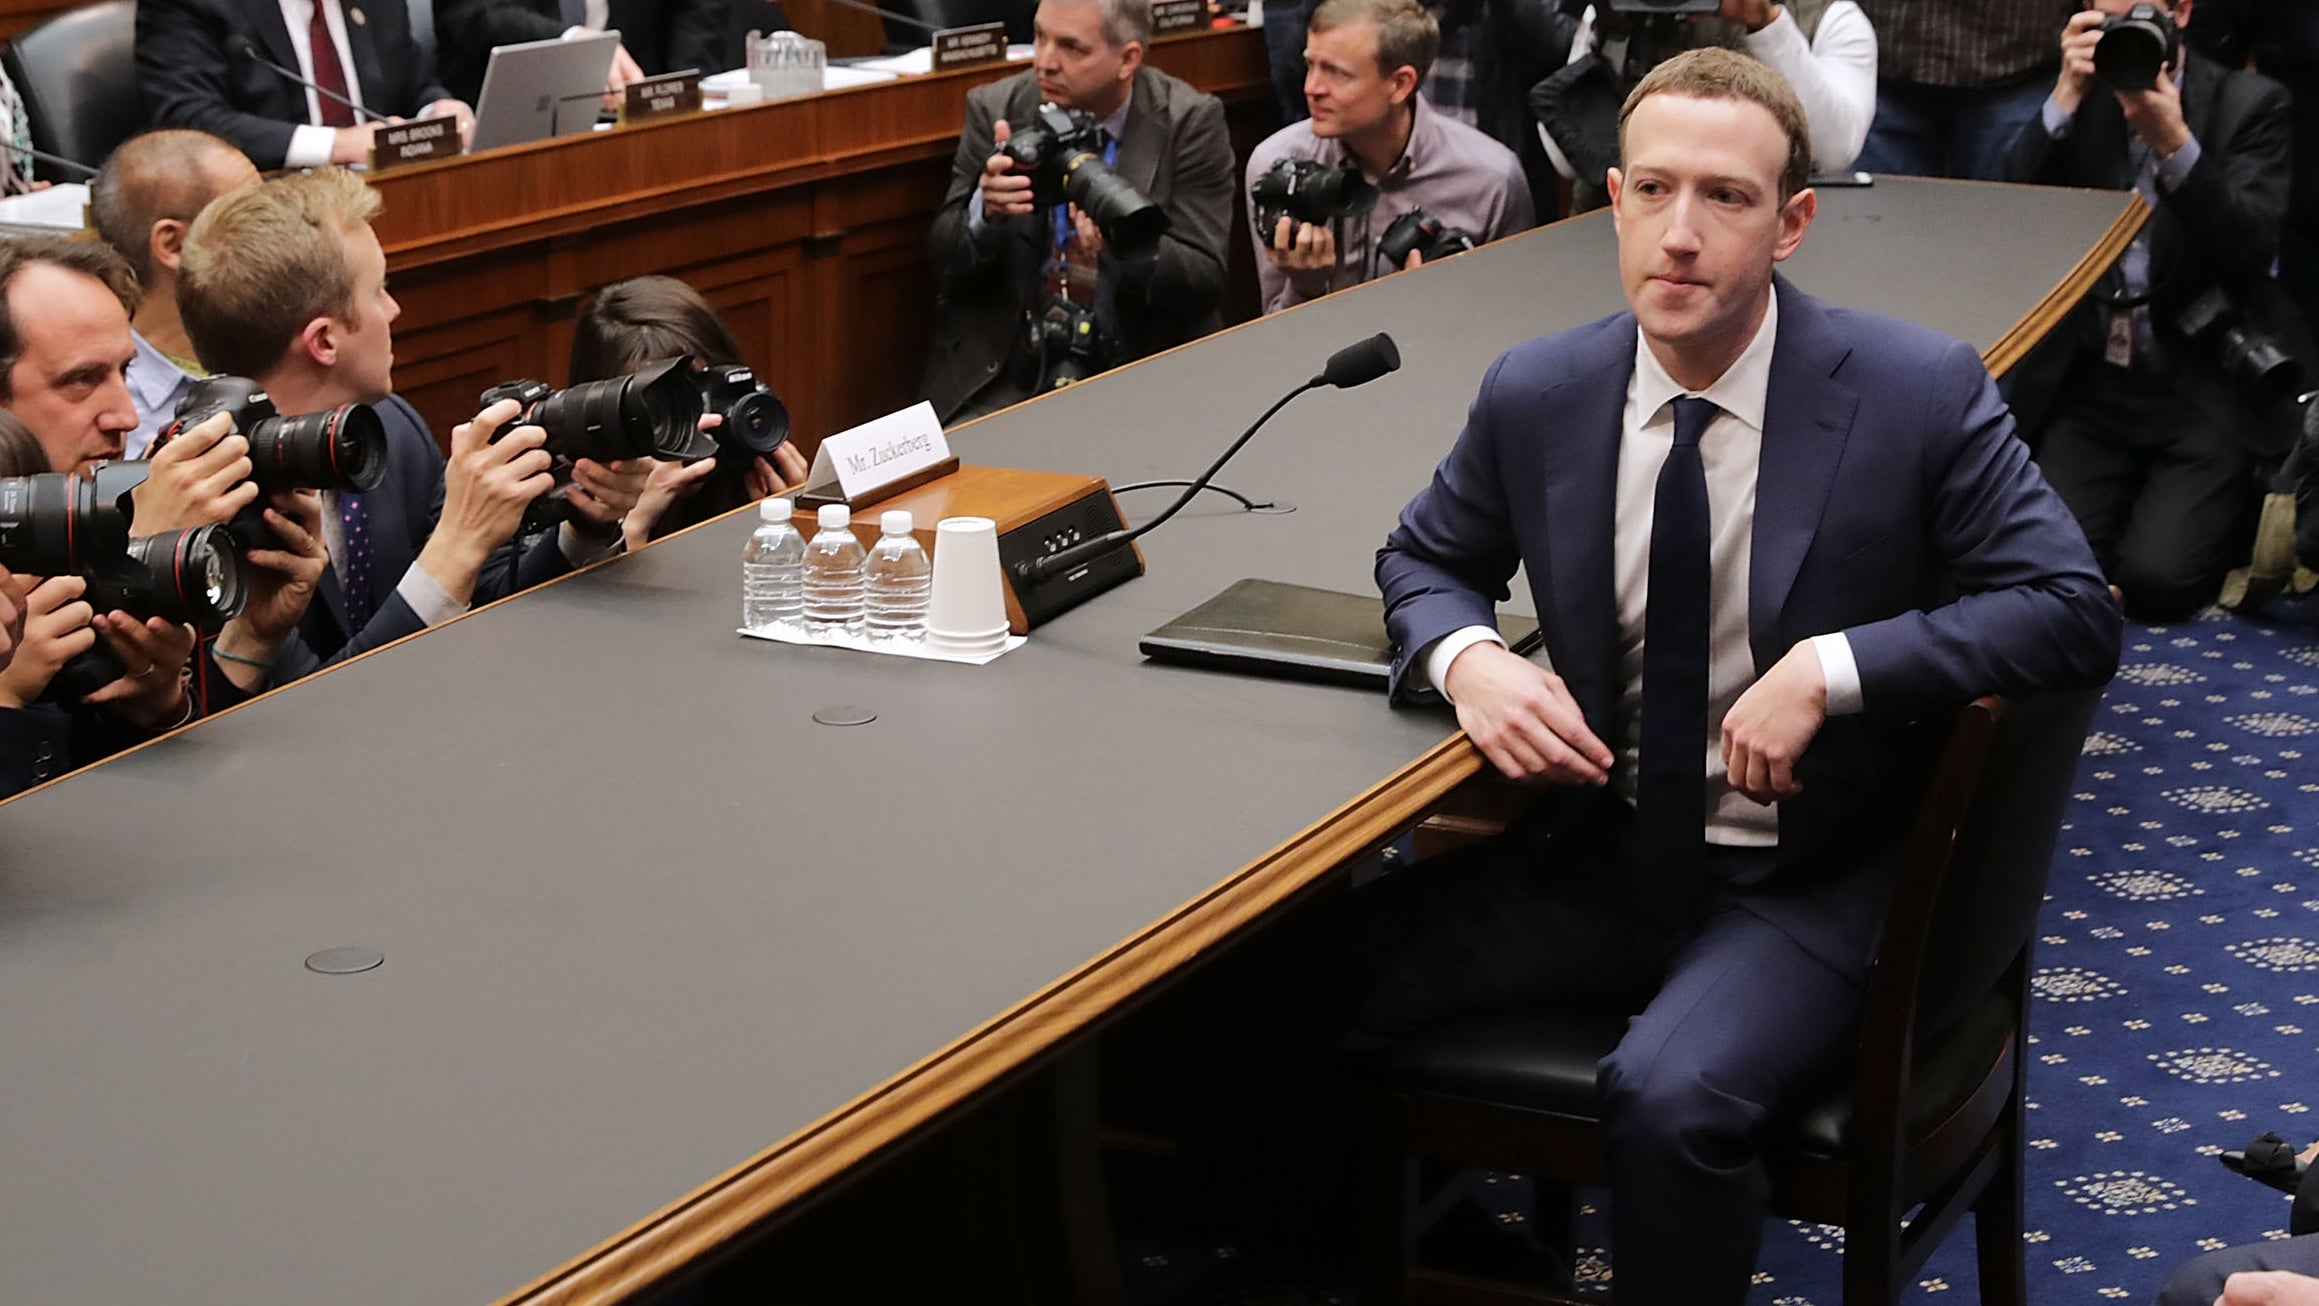 DC Attorney General Hits Facebook With Major Cambridge Analytica Lawsuit